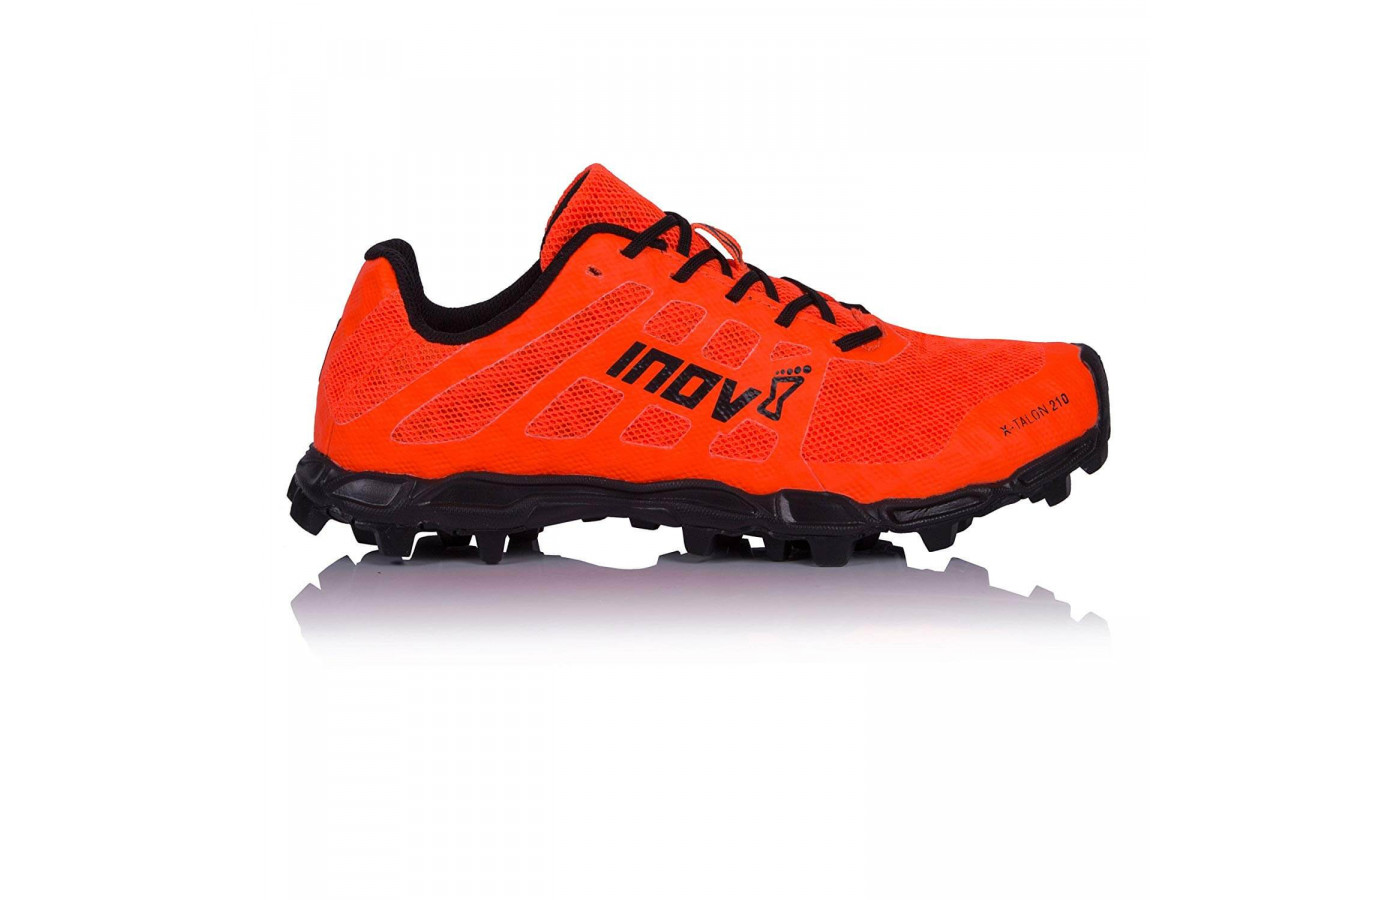 Inov-8 X-Talon 210 Main